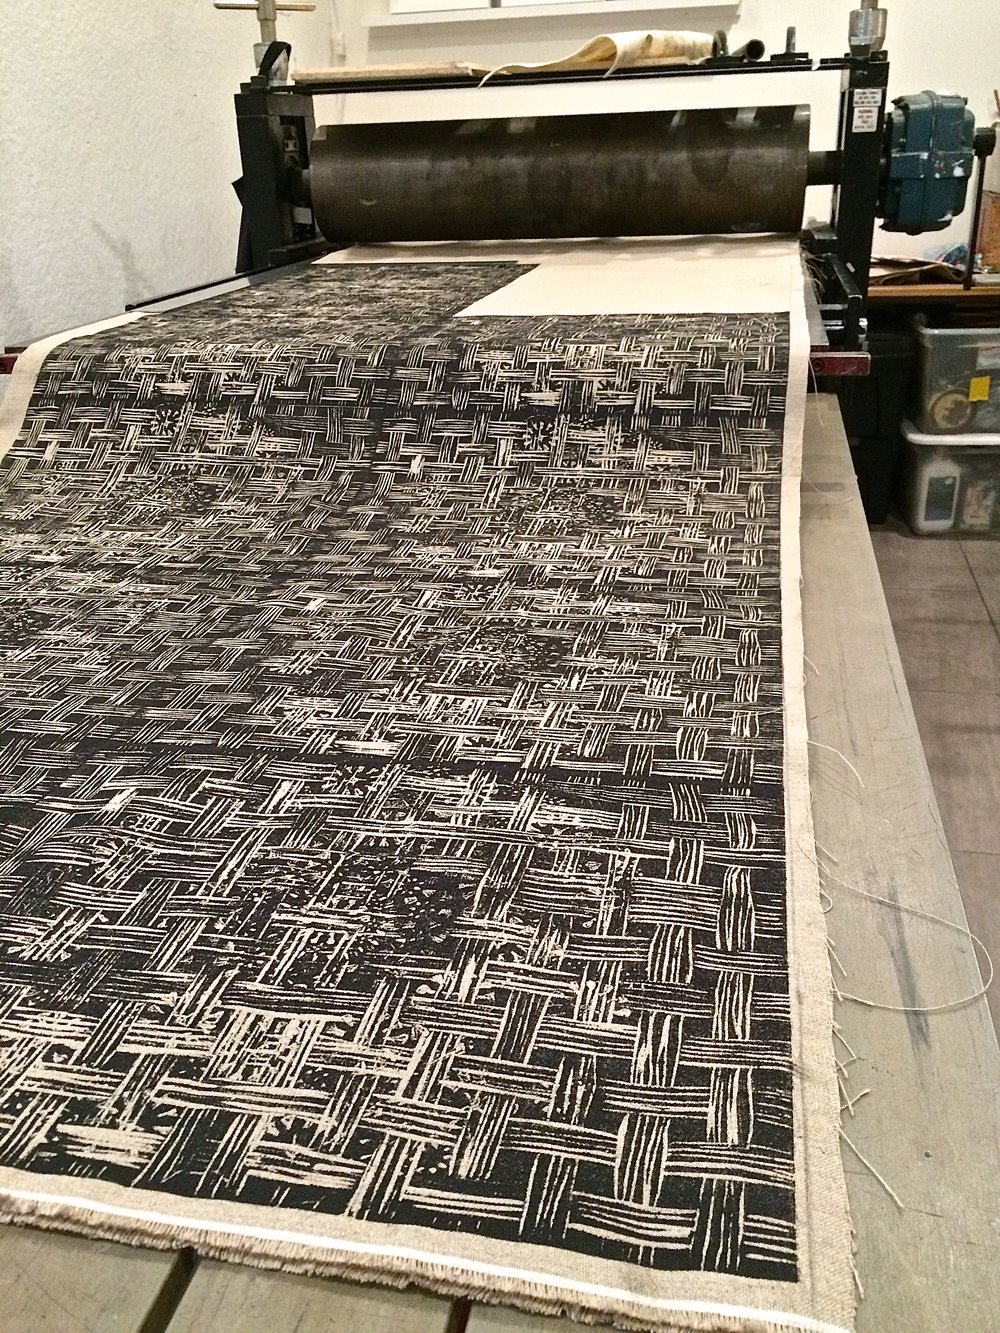 Louise Eastman print in process on the press